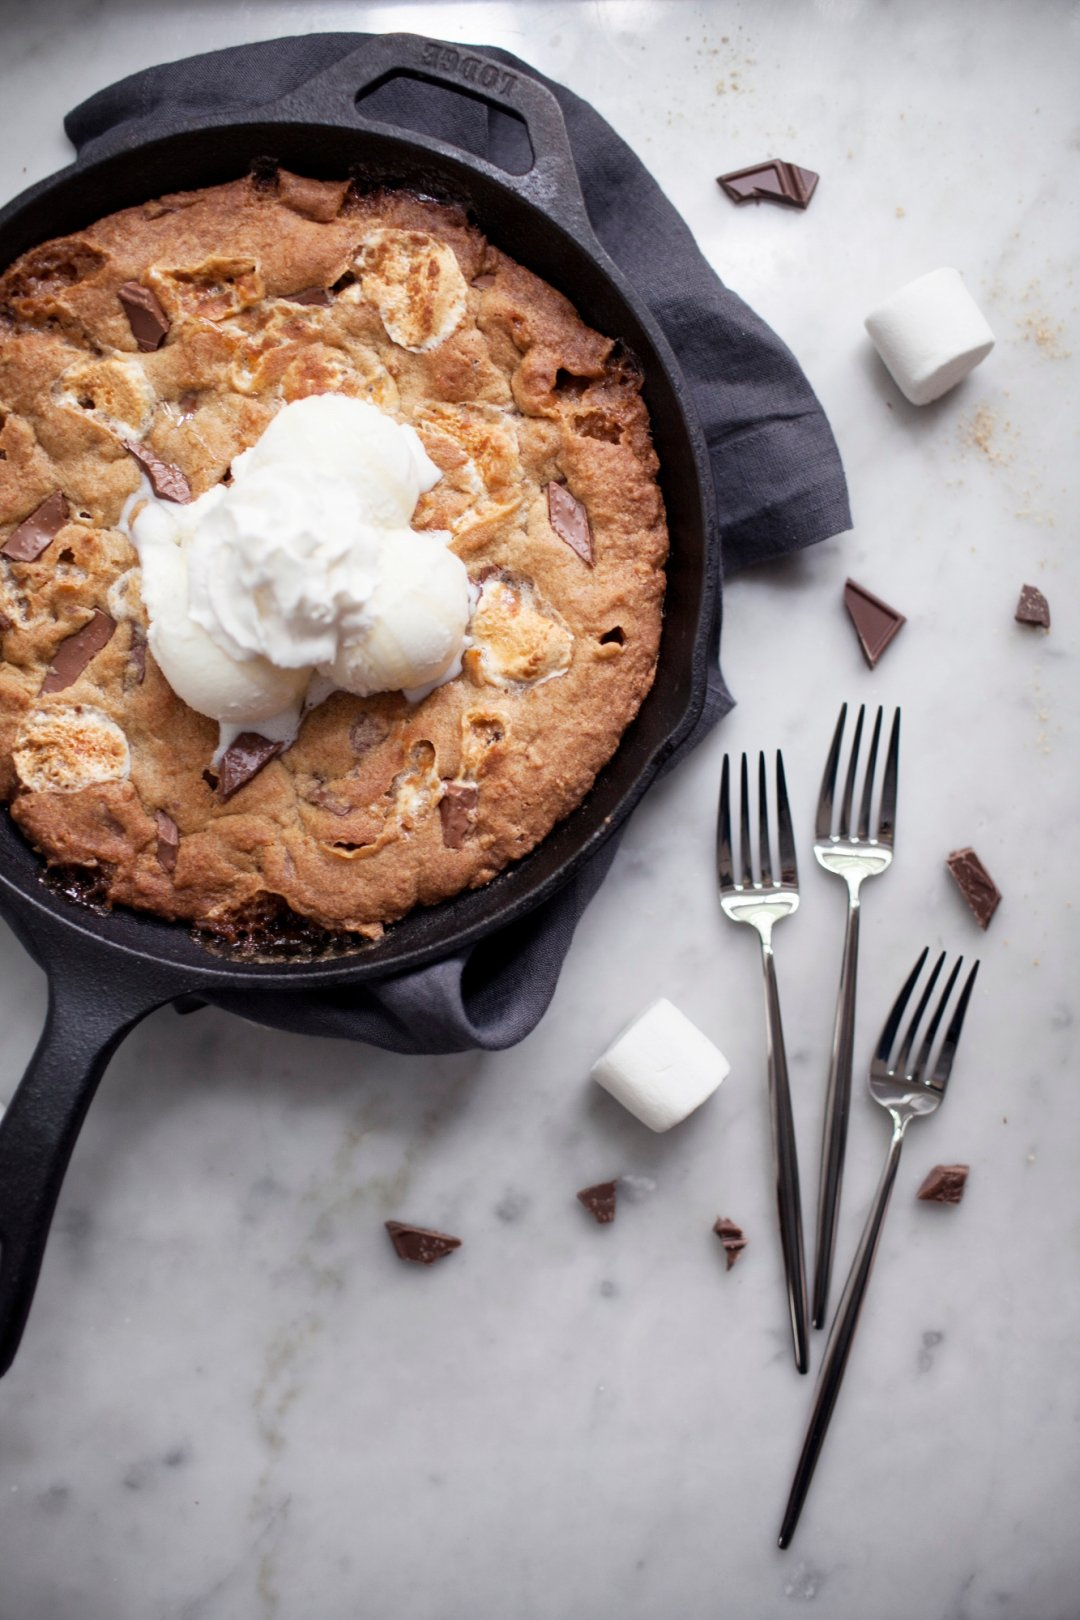 Cookie skillet with ice cream and three forks